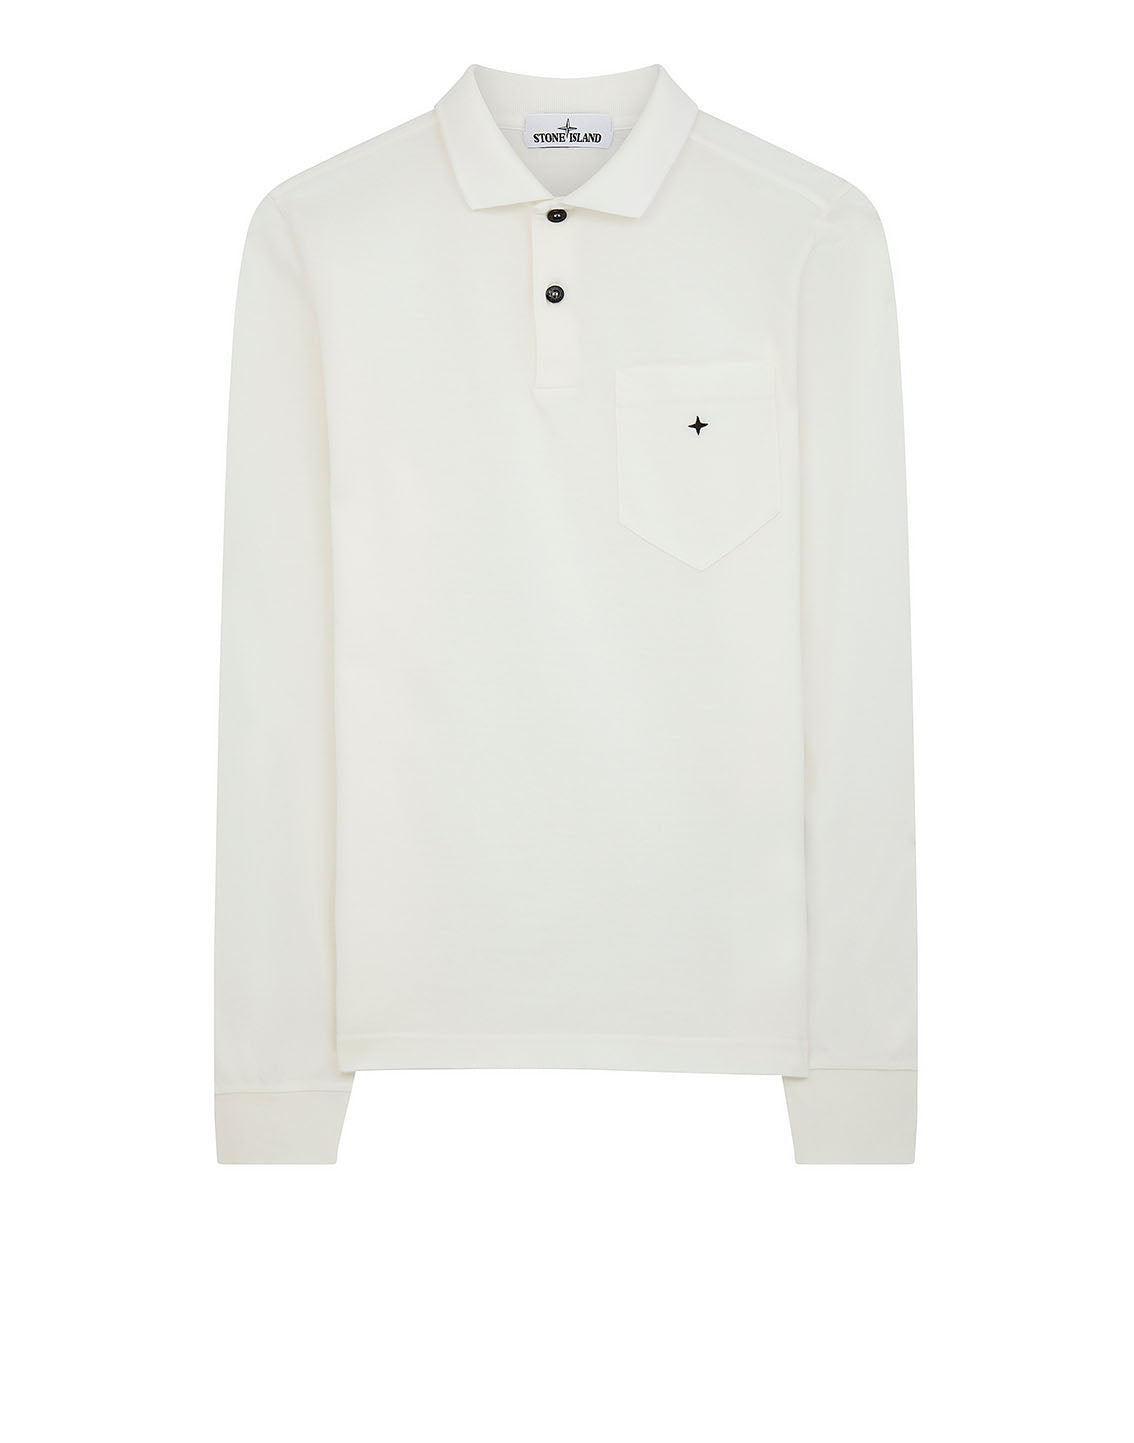 21112 Polo Shirt in Natural